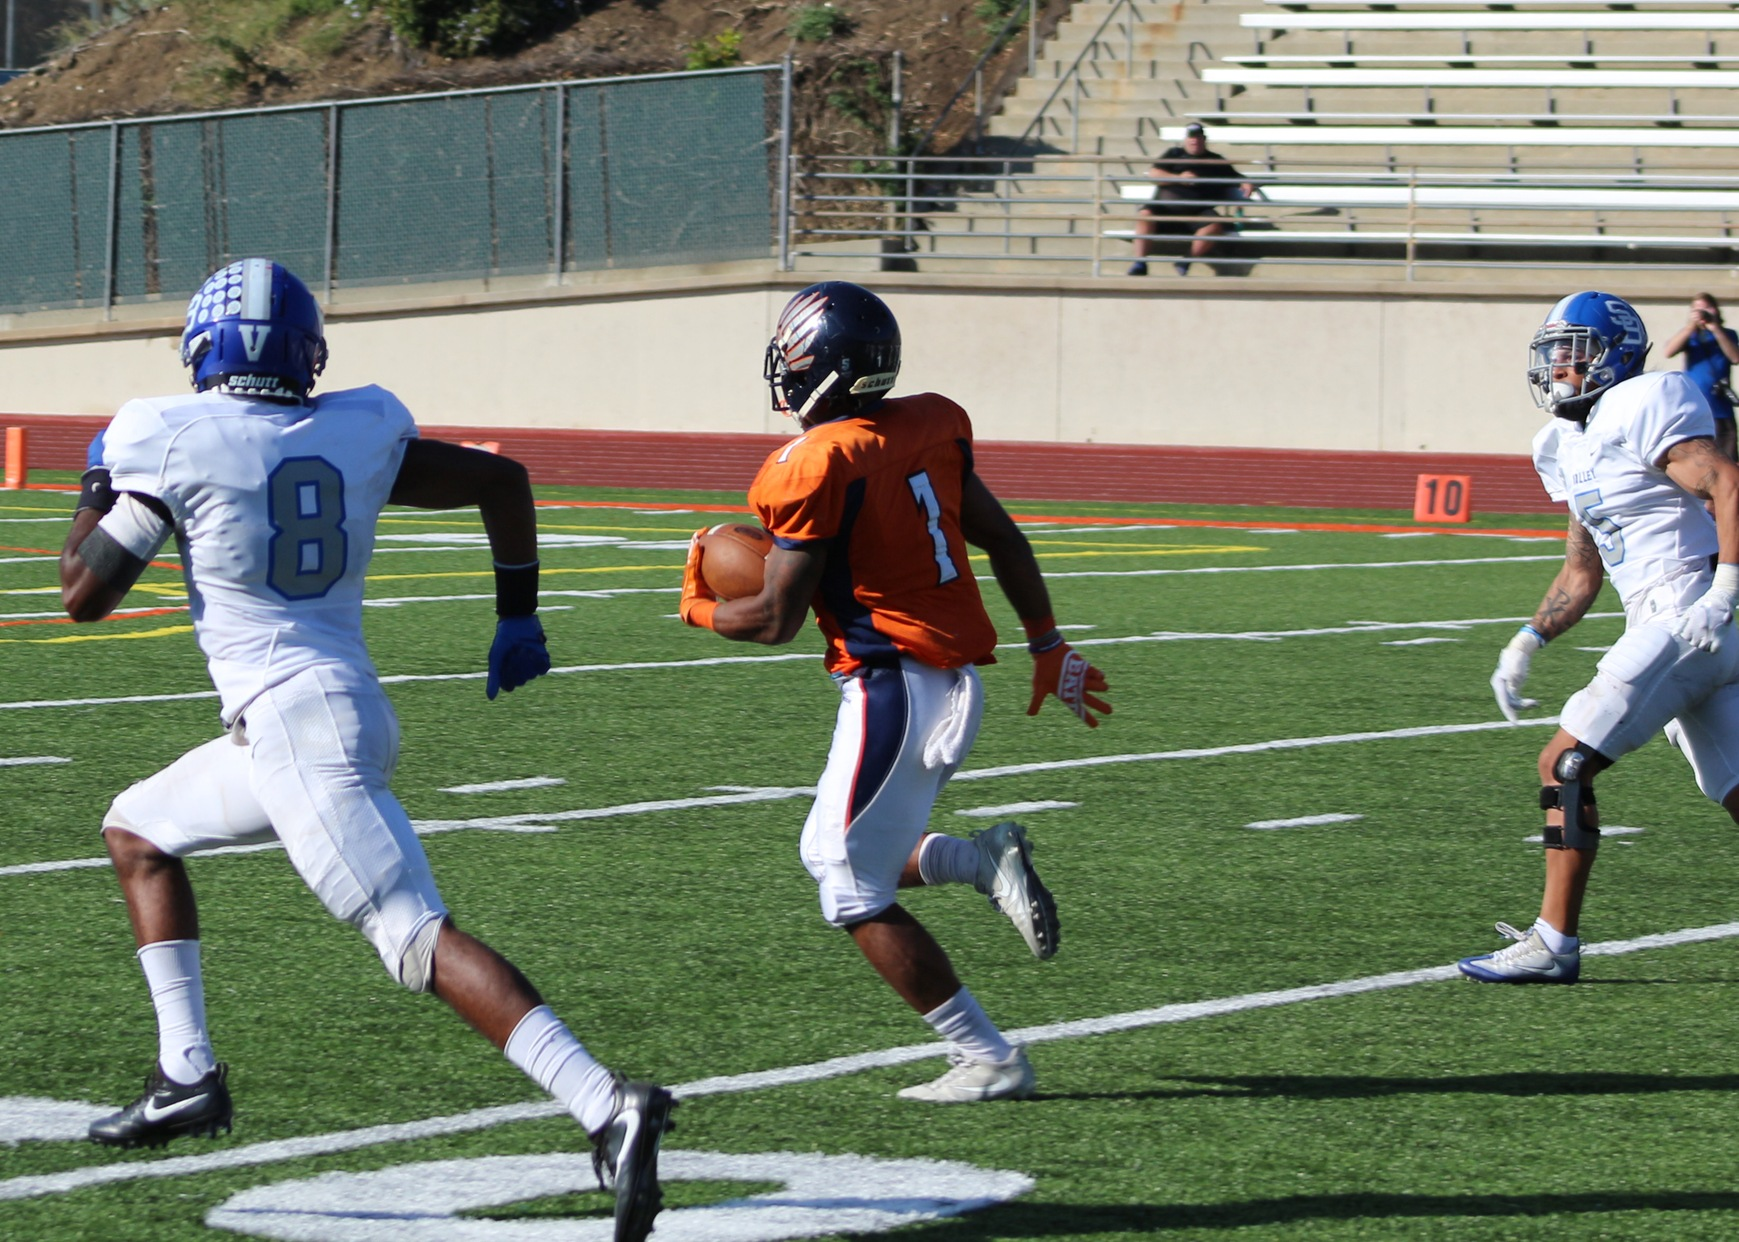 James Brown breaks downfield two weekends ago vs San Bernardino Valley. Image: Jesse Elrod